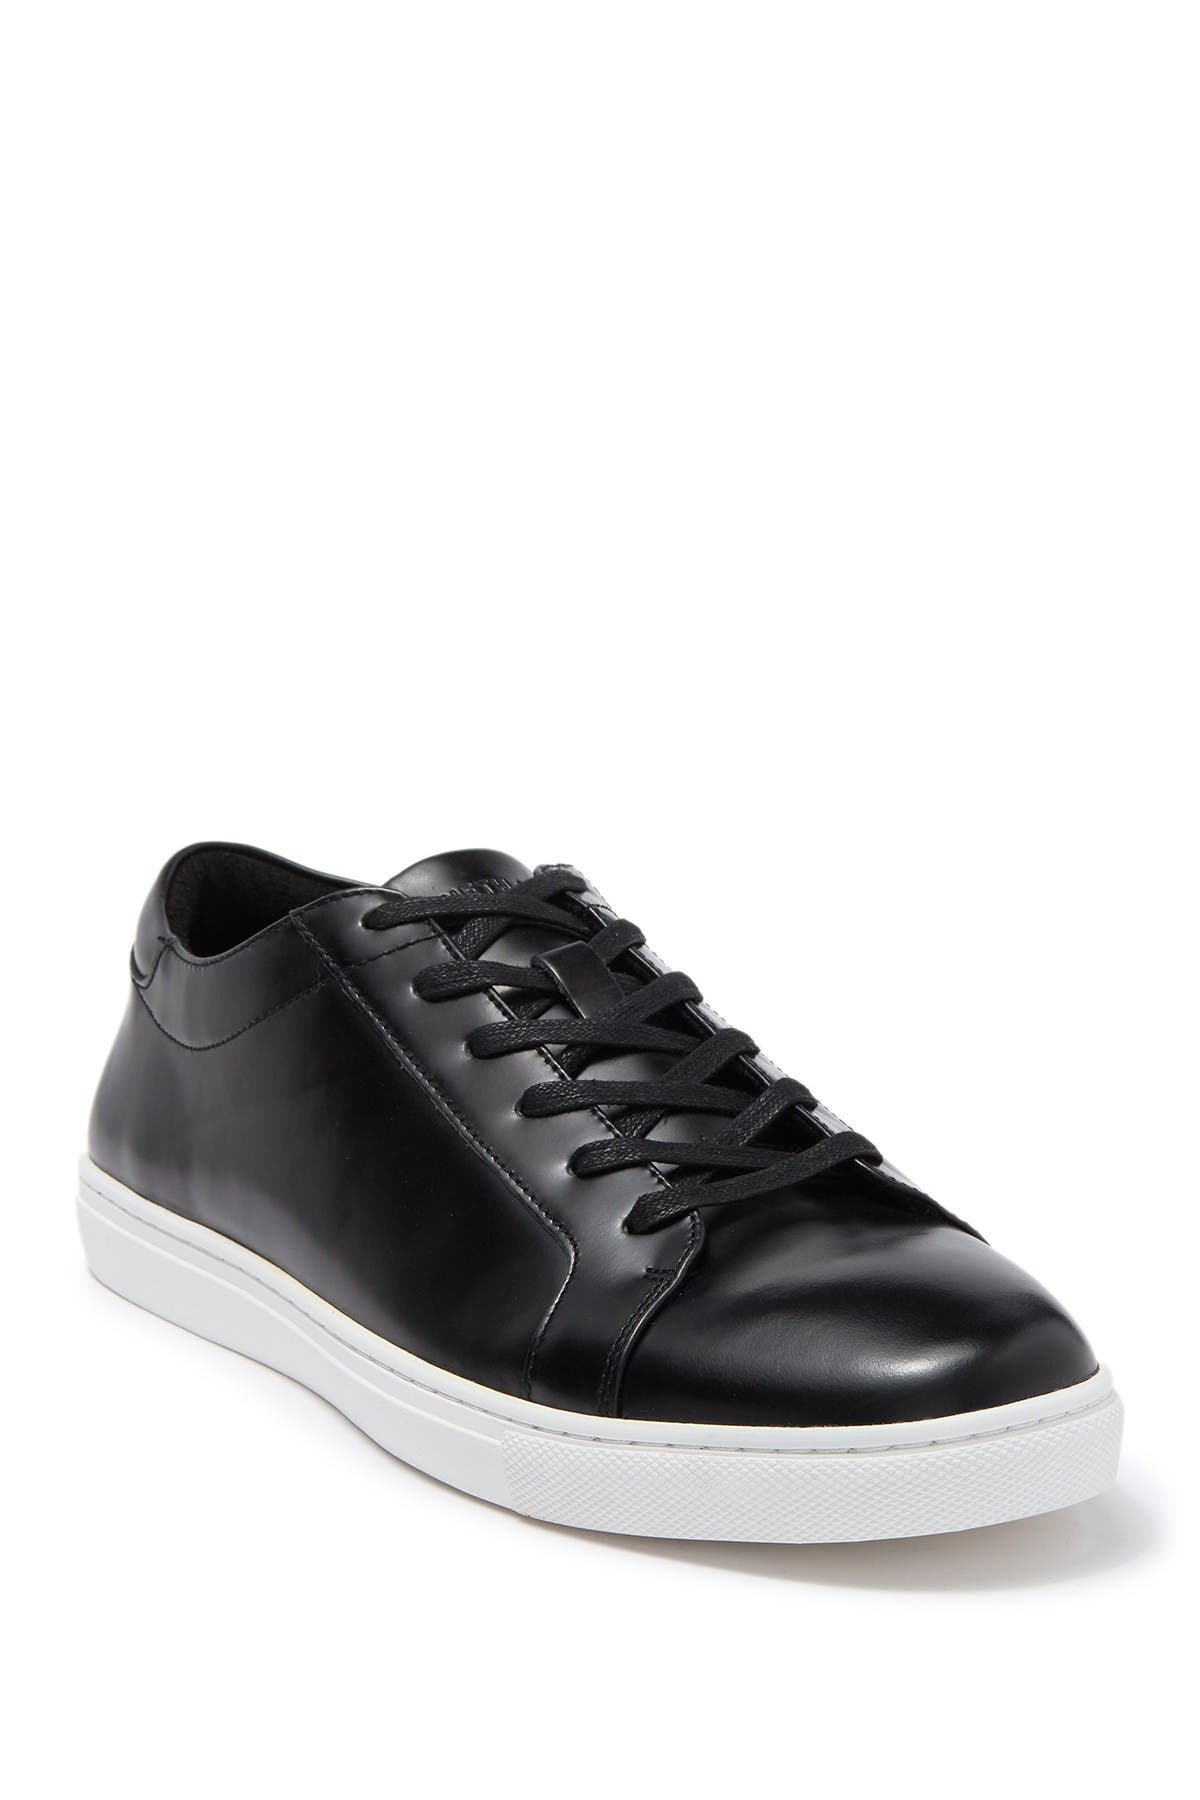 Kenneth Cole New York | Kam Pride Lace